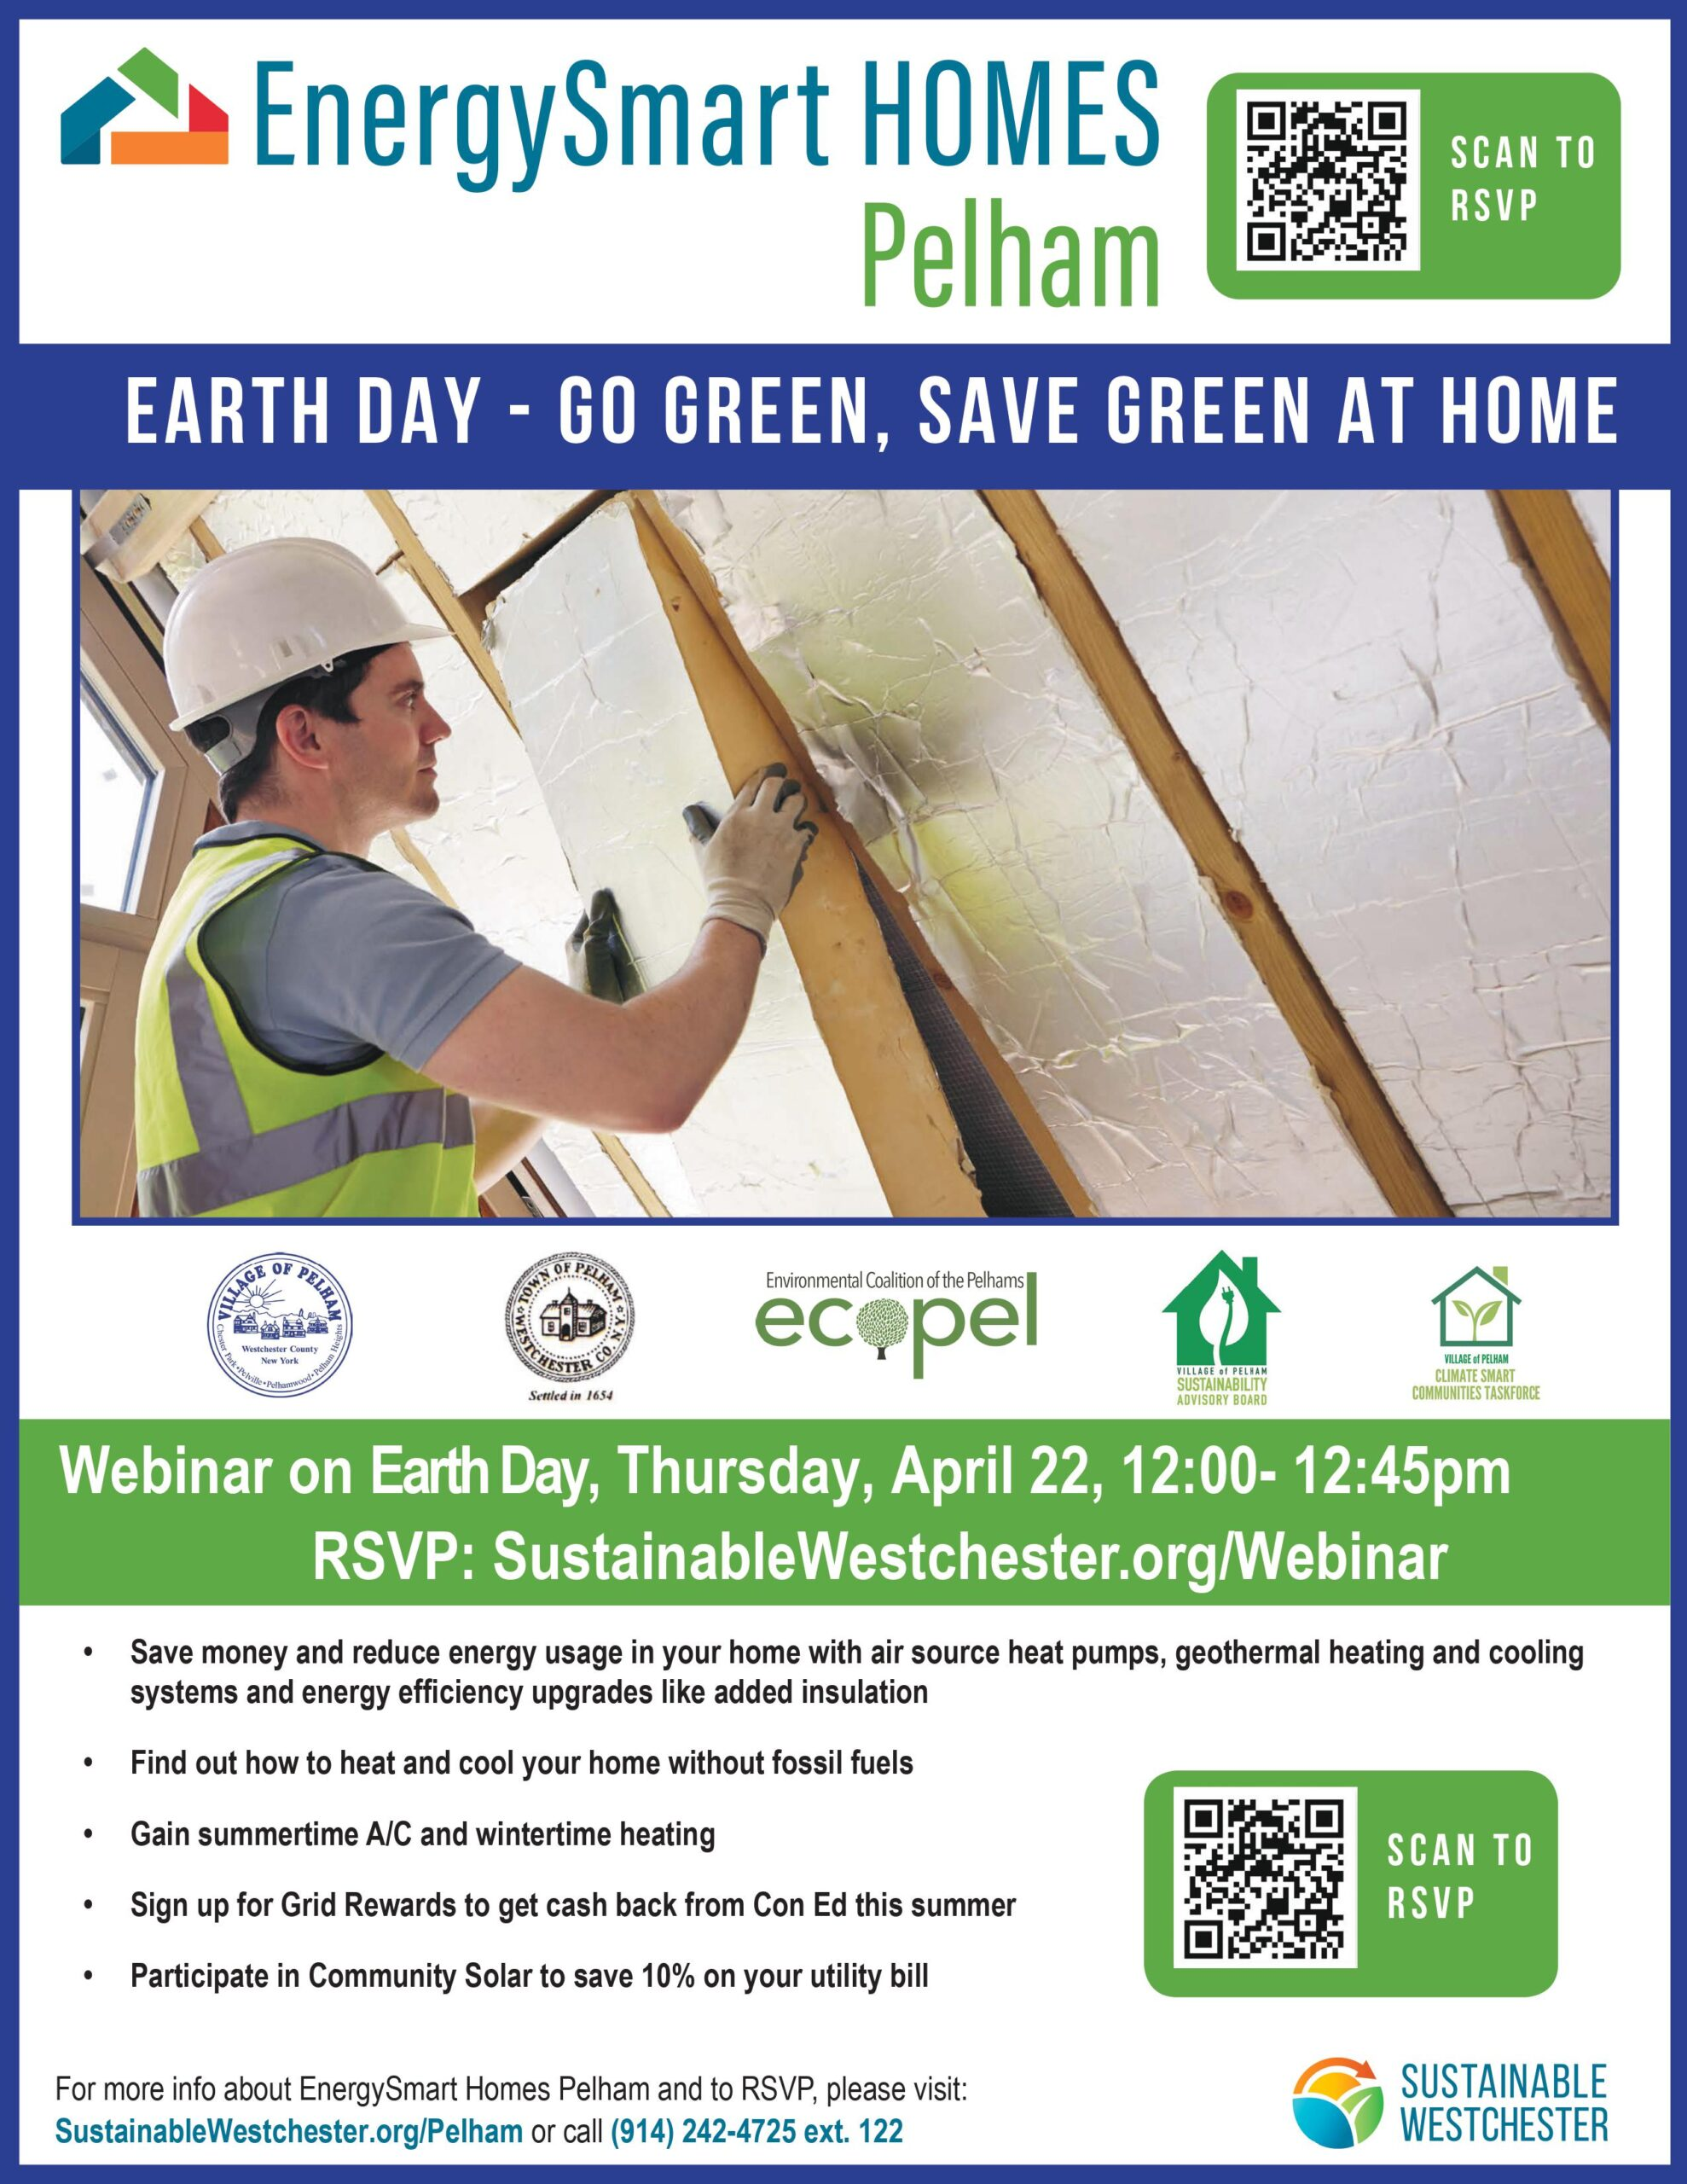 April 22, 12:00-12:45 Earth Day with Green Ossining and Briarcliff Sustainability